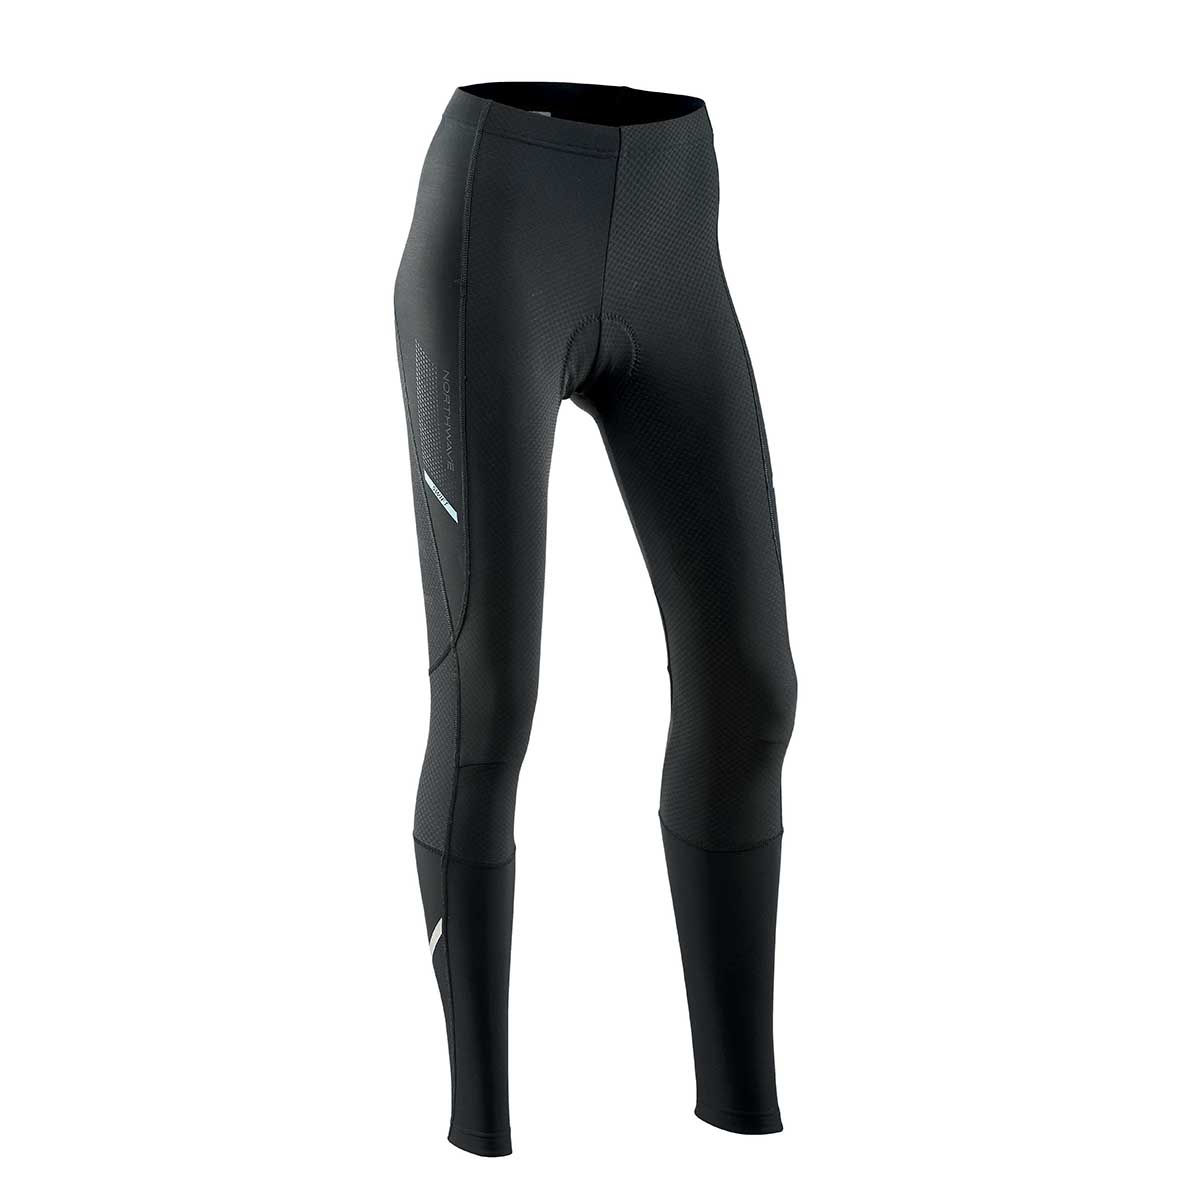 Cuissard long Femme Northwave Swift - S Noir Cuissards longs de vélo